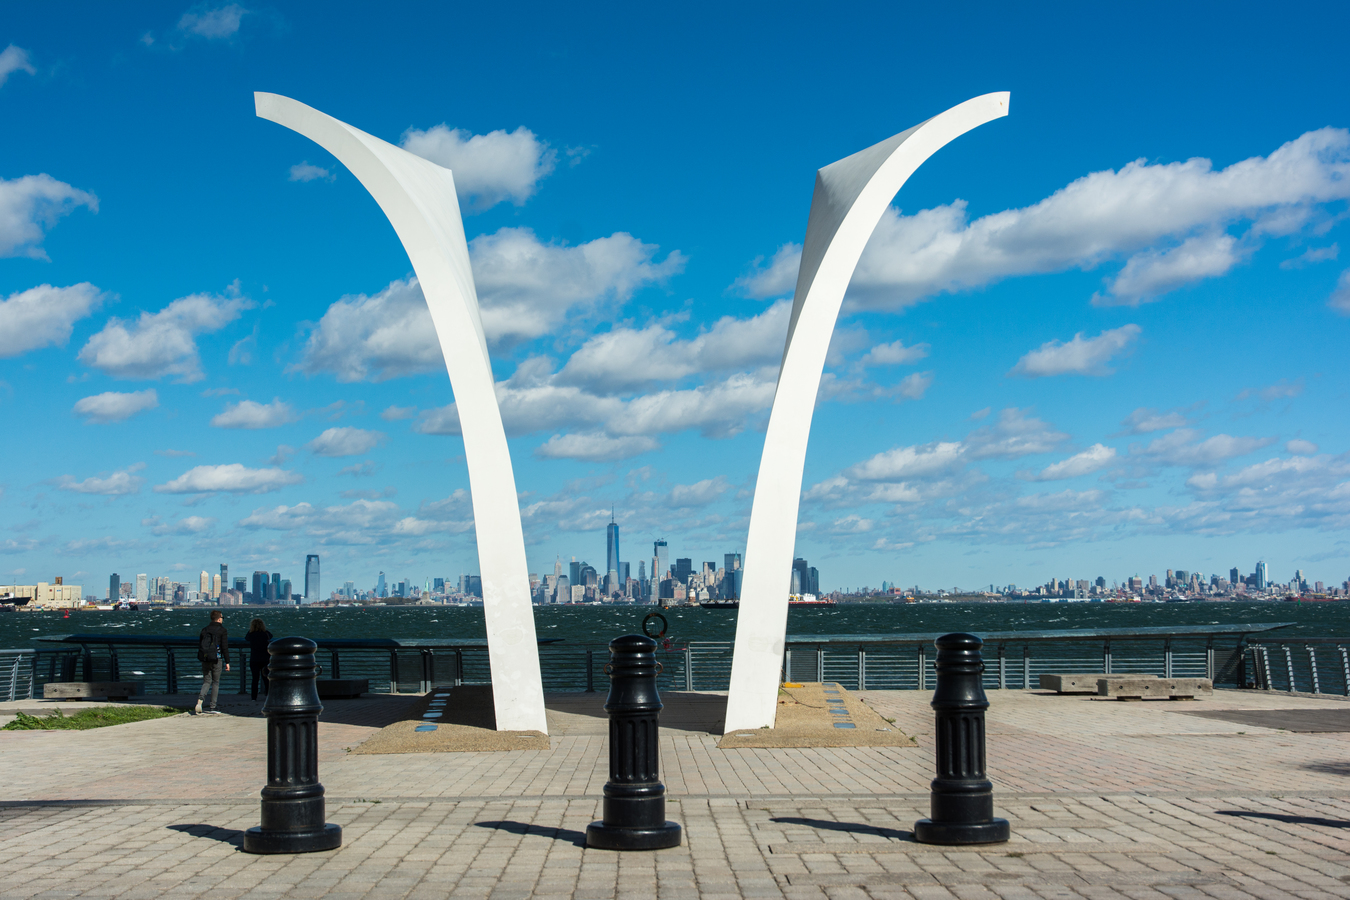 The Staten Island September 11th Memorial